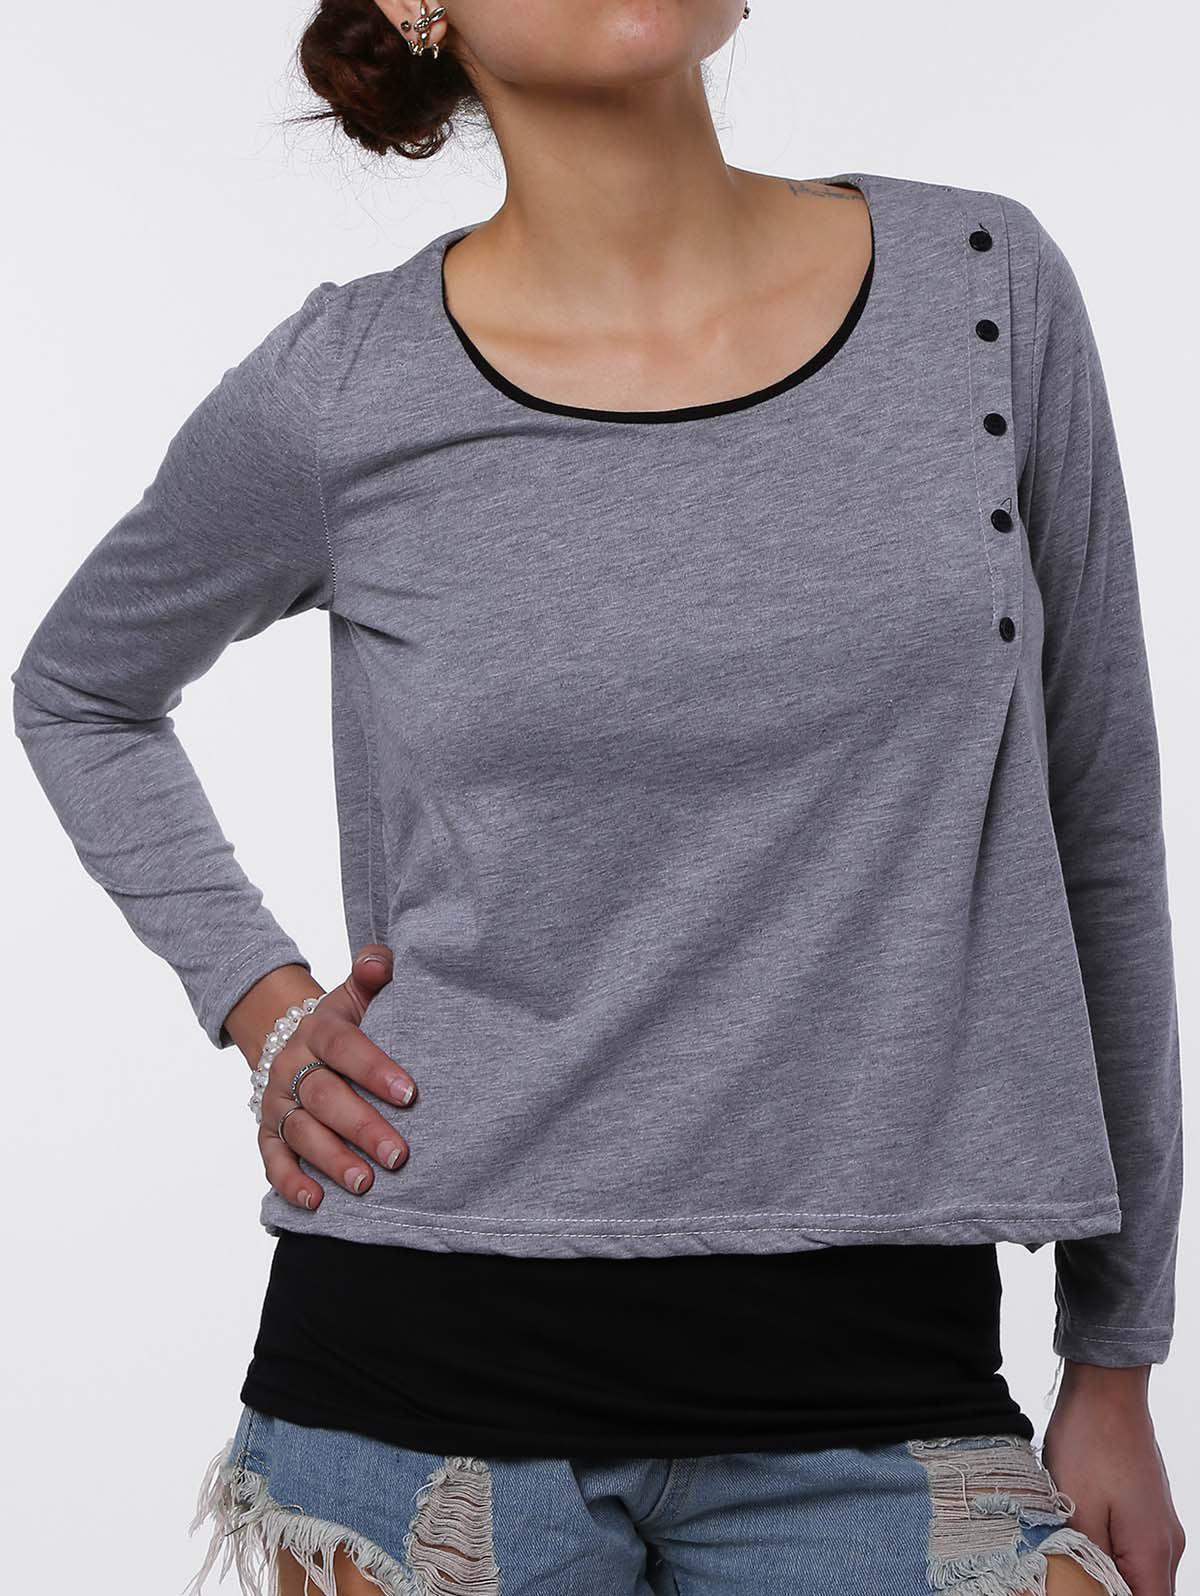 Stylish Faux Twinset Design Scoop Neck Long Sleeve T-Shirt For Women - LIGHT GRAY L